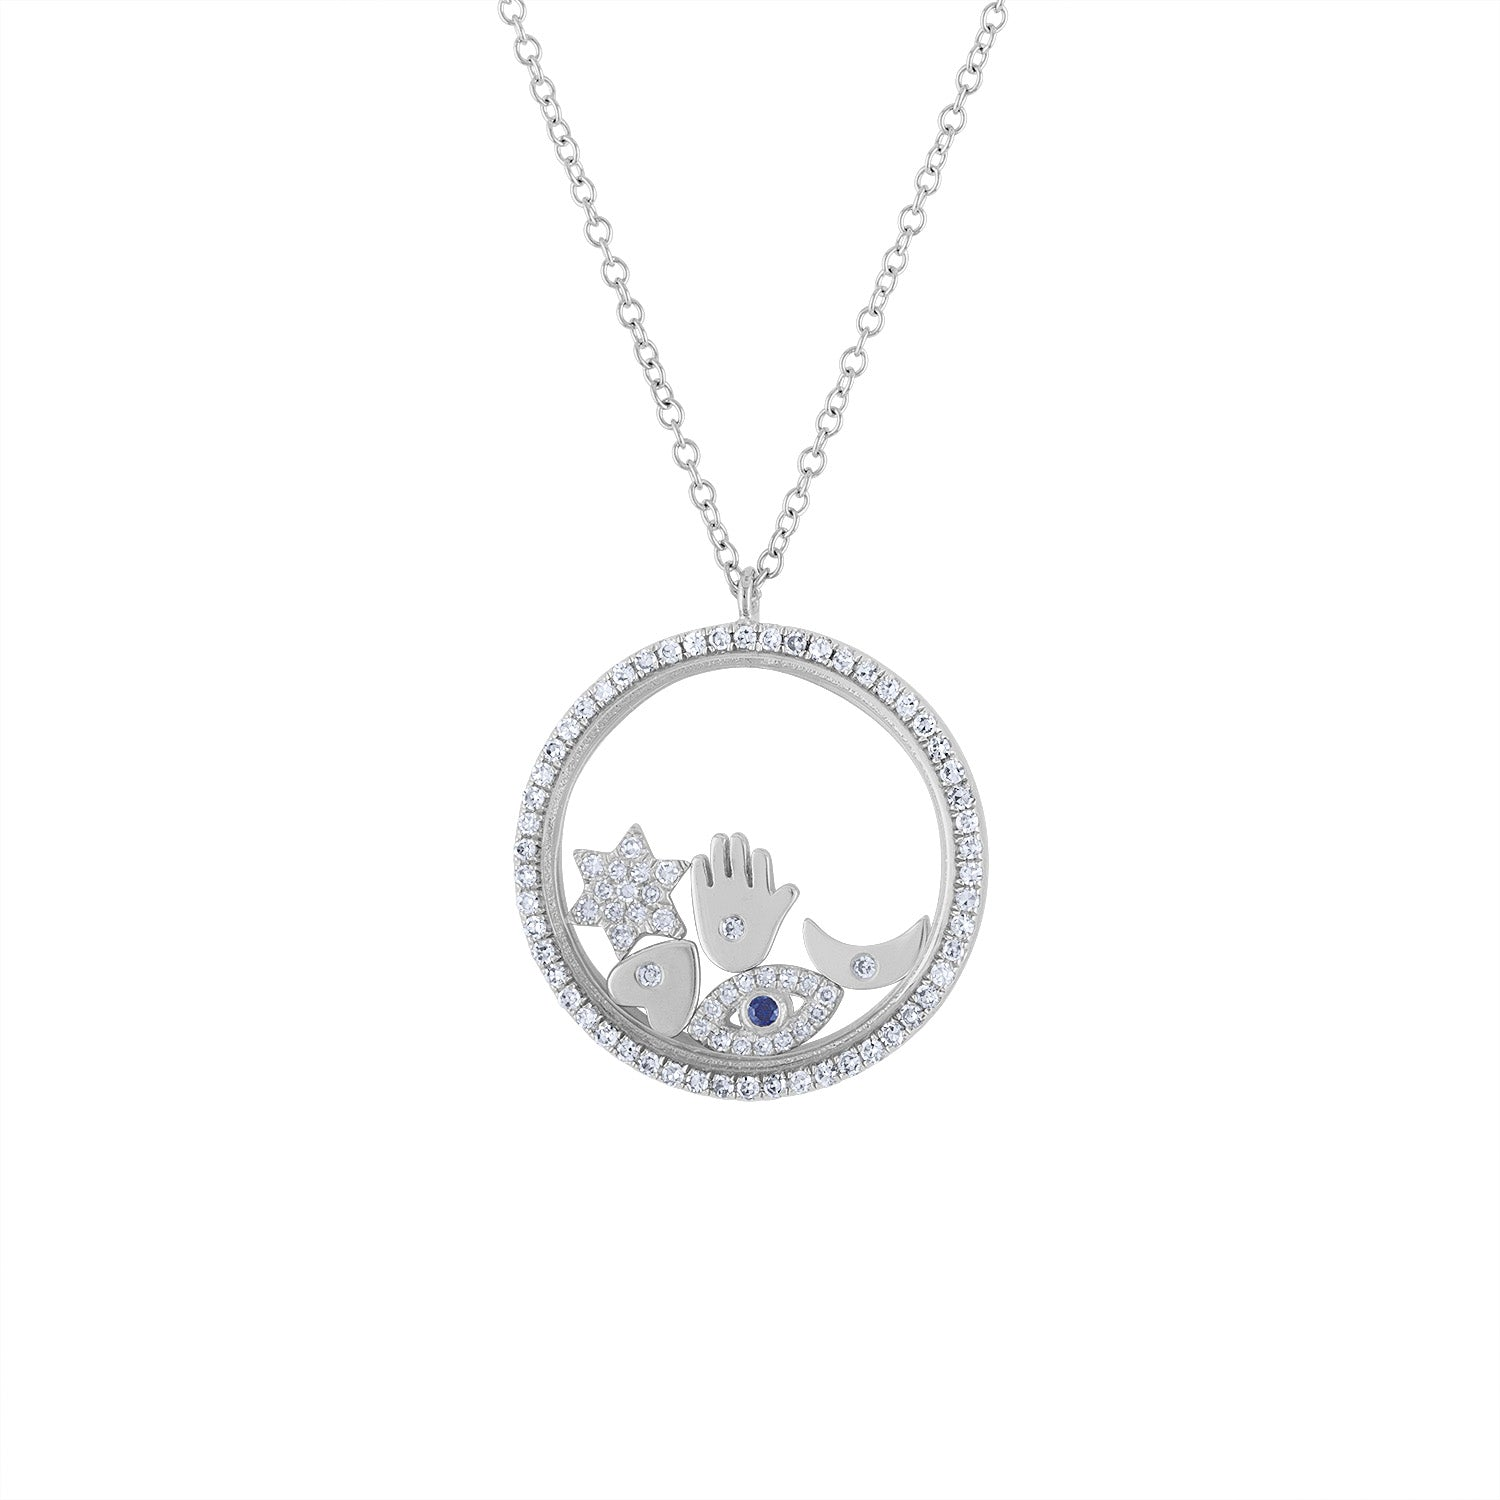 14KT GOLD DIAMOND FLOATING CHARM PENDANT NECKLACE